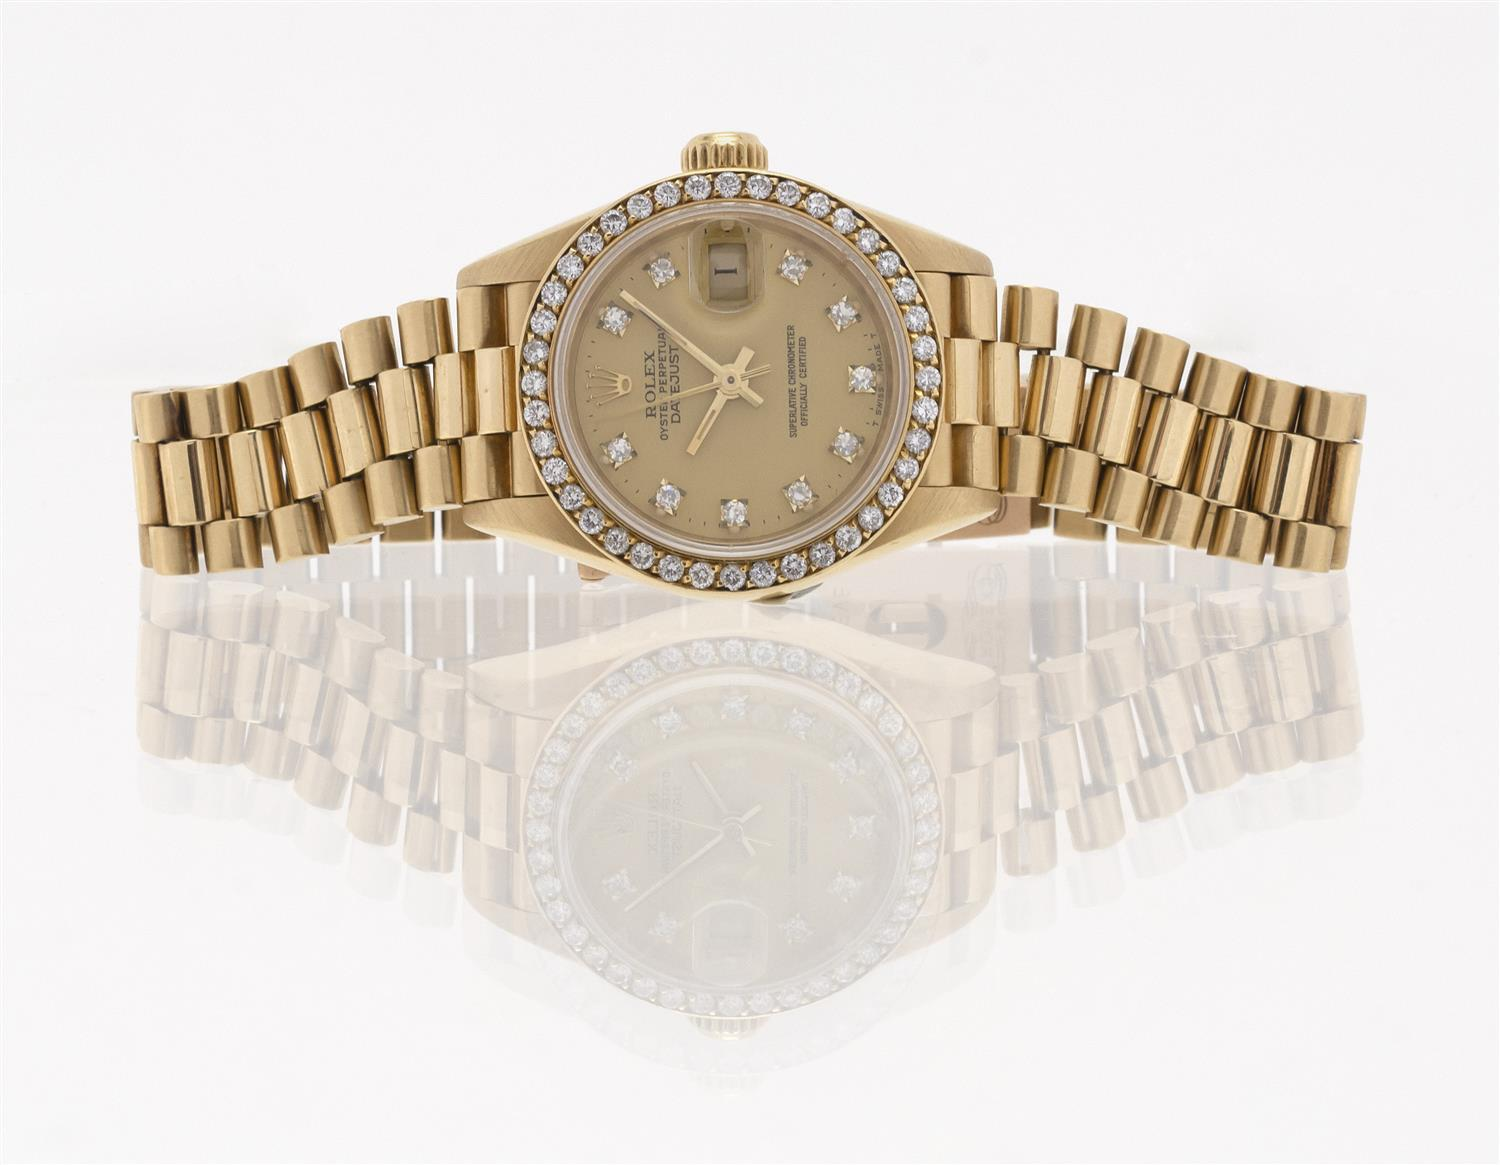 ROLEX OYSTER PERPETUAL DATEJUST 18KT GOLD AND DIAMOND LADY'S WRIST WATCH Gold-tone dial with date function and diamond sticks. Case...